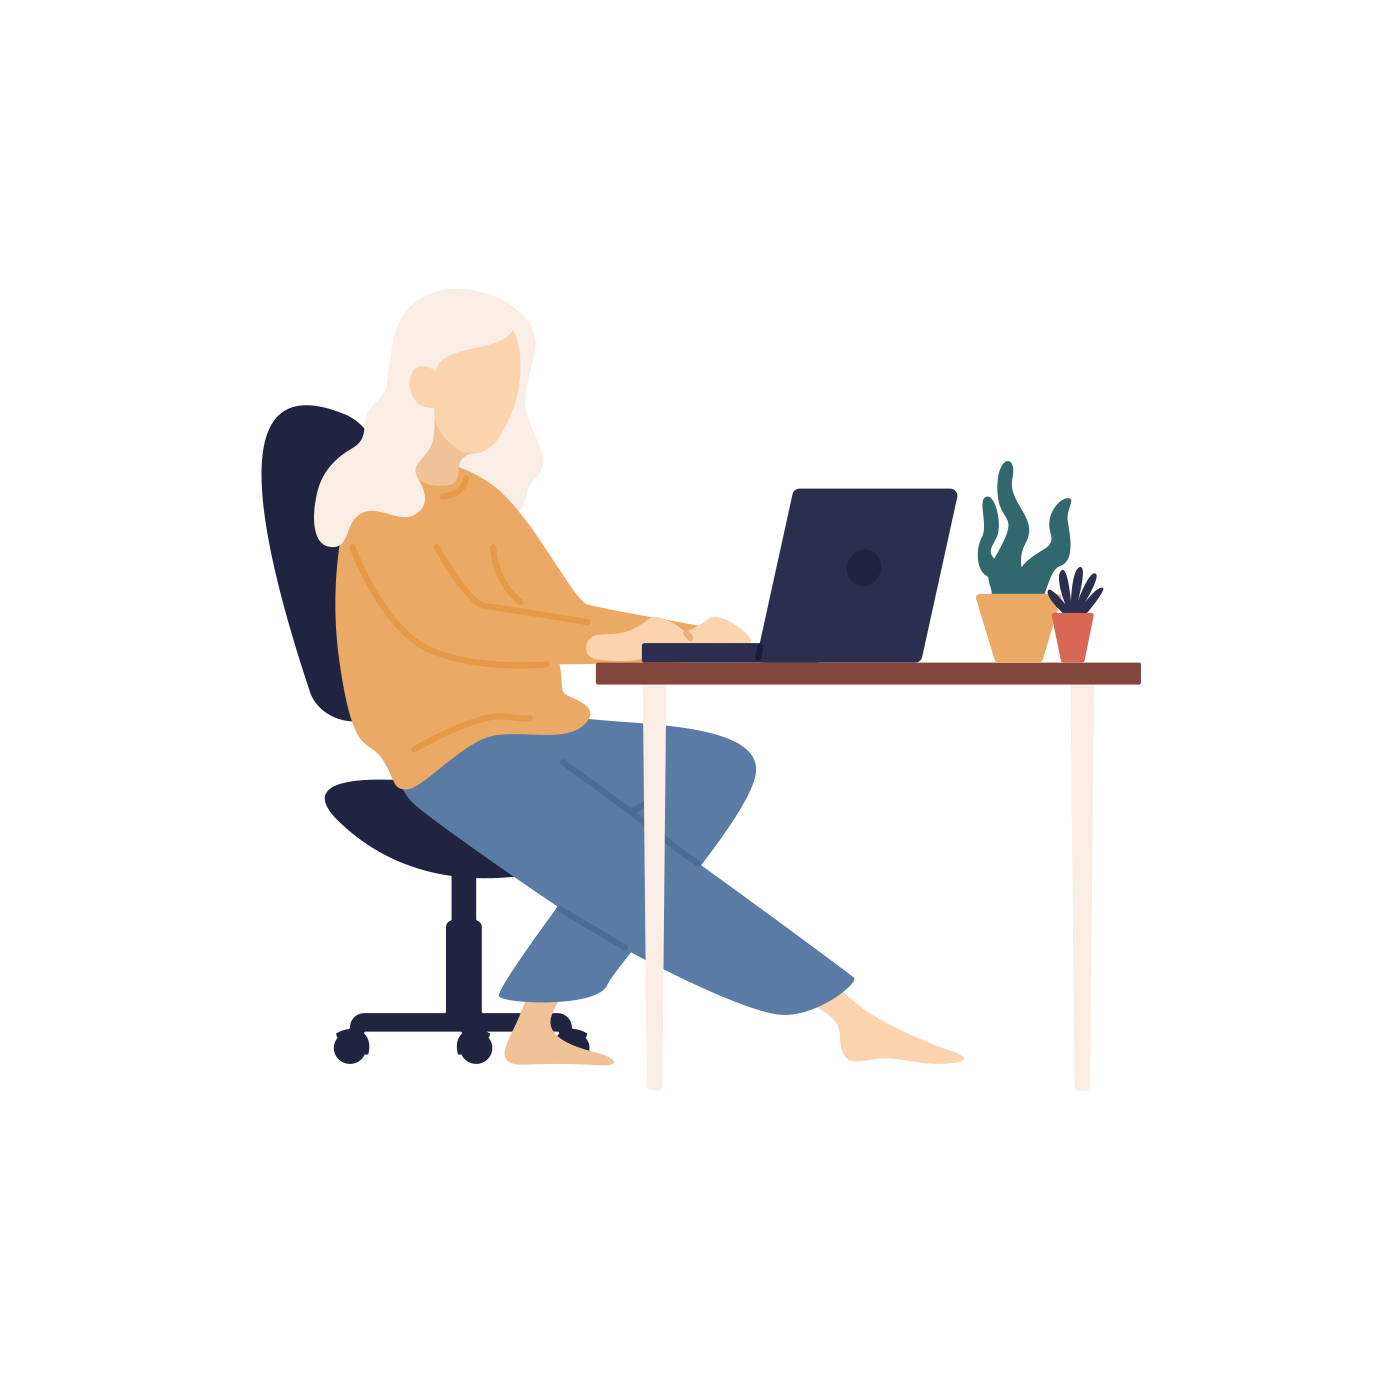 sitting at desk illustration